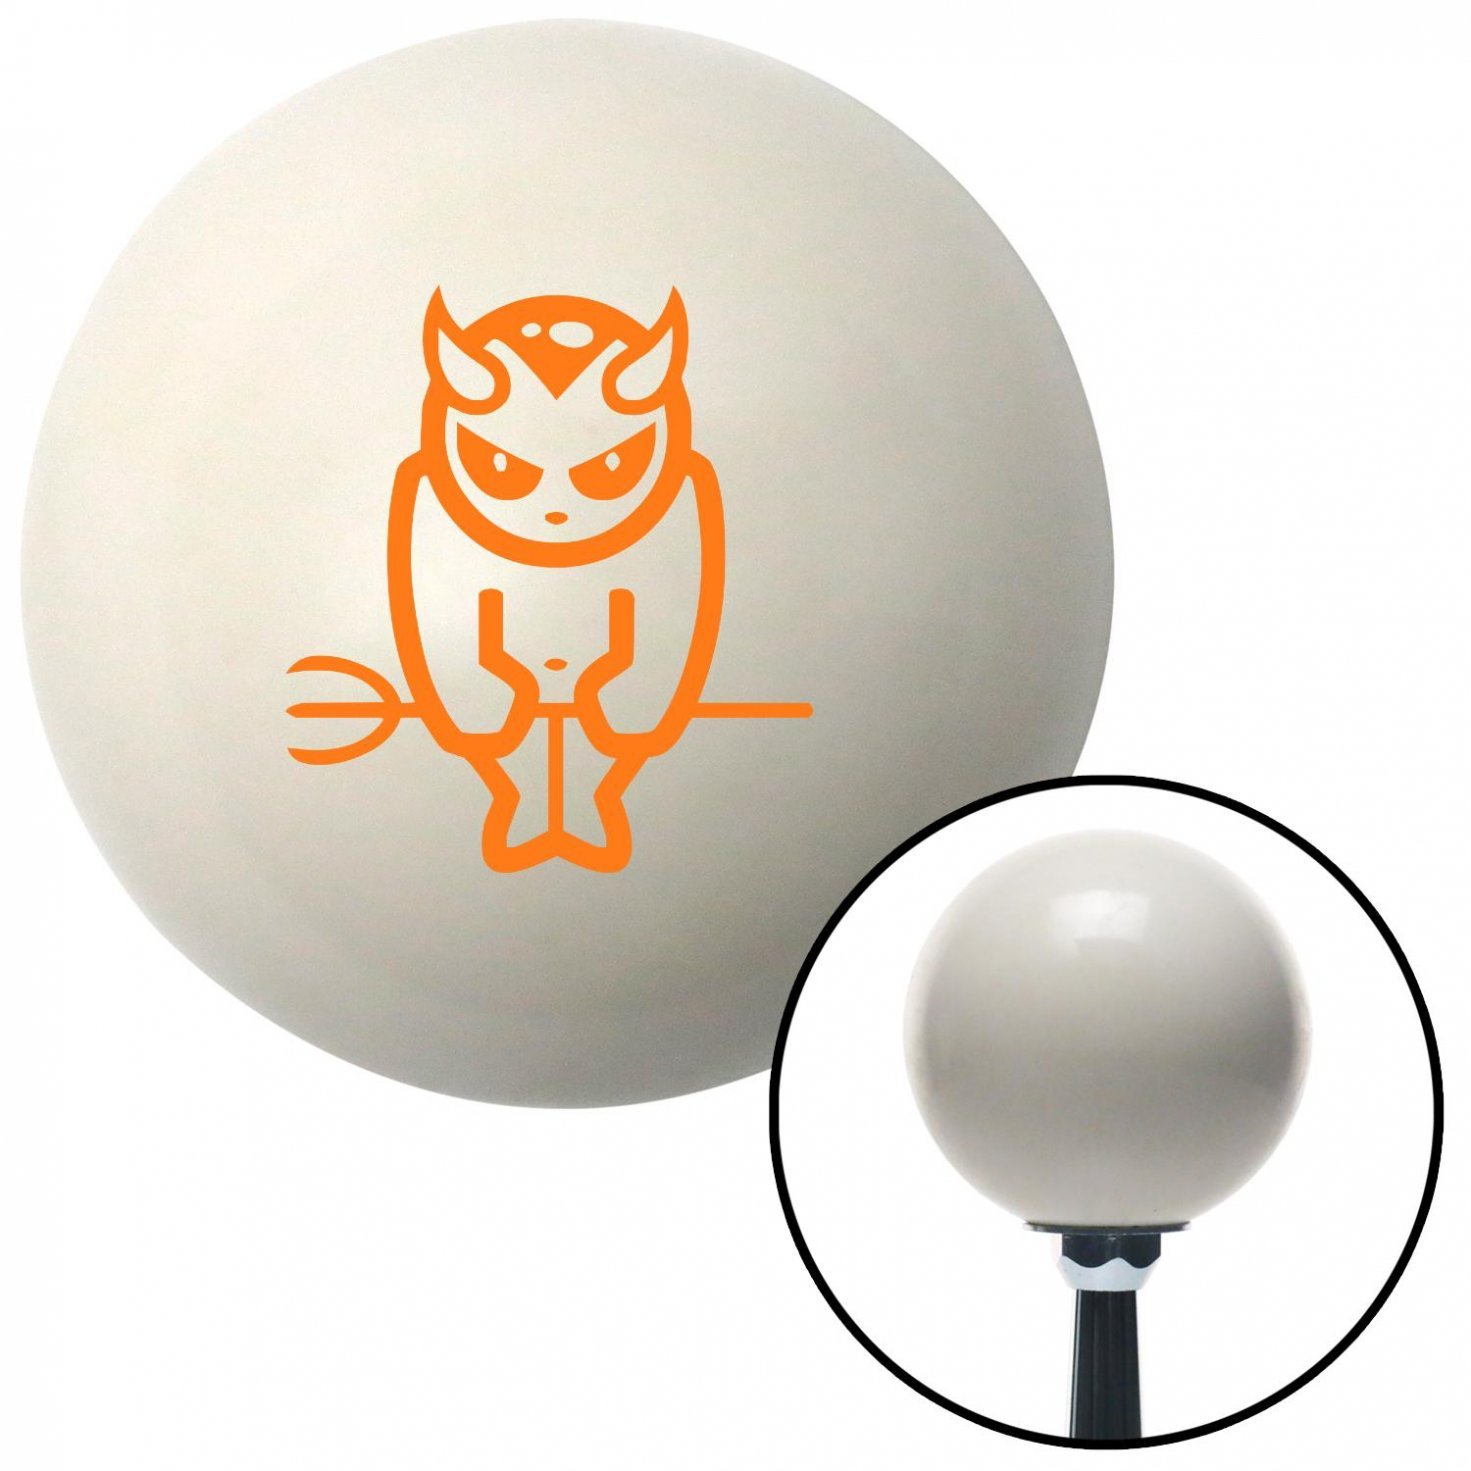 Orange Devil Holding a Pitch Fork American Shifter 32323 Ivory Shift Knob with 16mm x 1.5 Insert